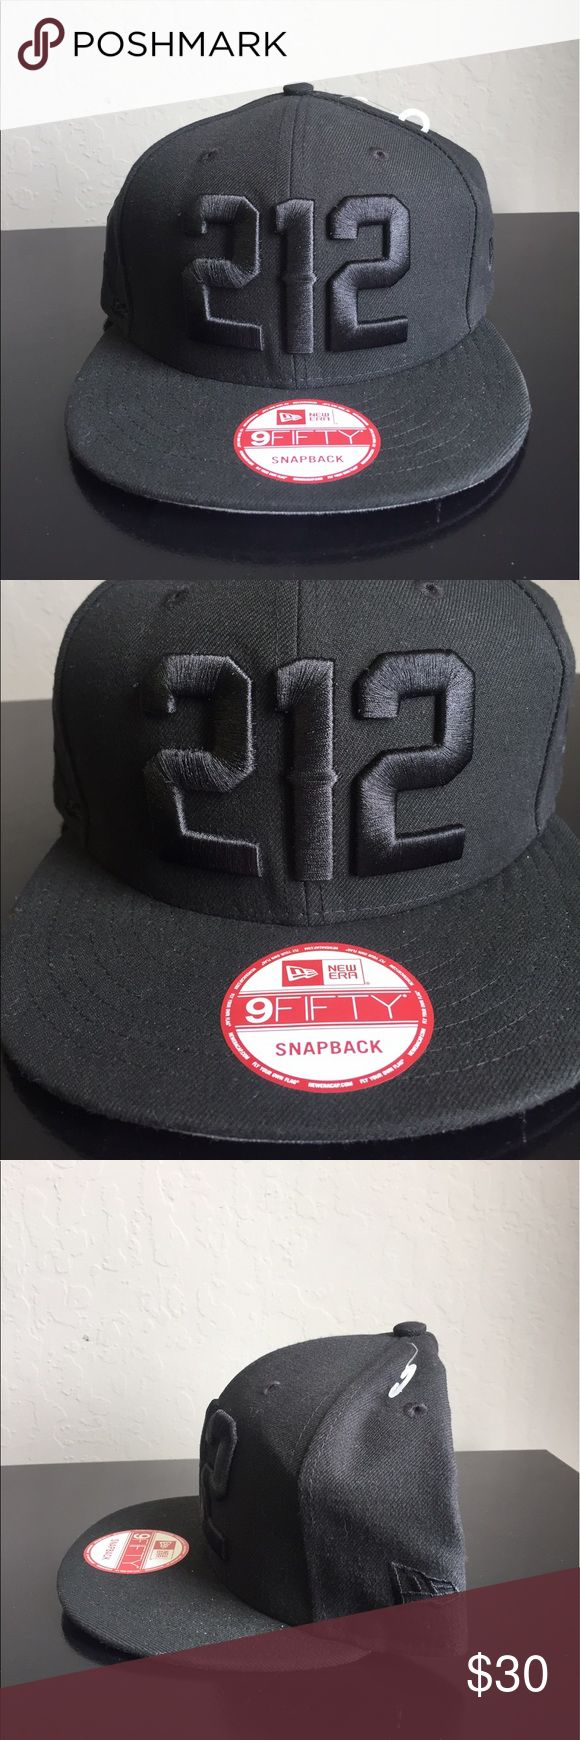 ❗️ 1 DAY SALE❗️New Era 212 Area Code Yankees Hat New Era 9Fifty 212 Area Code New York Yankees Hat  Brand : New Era  Style : 9Fifty  Color : Black  Size : Adjustable  Material : 100% Polyester  Full black base and button  212 Embroidered in black on the front of the cap  New Era Logo embroidered on the left side of the cap  Black mesh cut out of the State of NU on the right side of the cap  Grey under bill  COMES FROM A SMOKE FREE HOME New Era Other